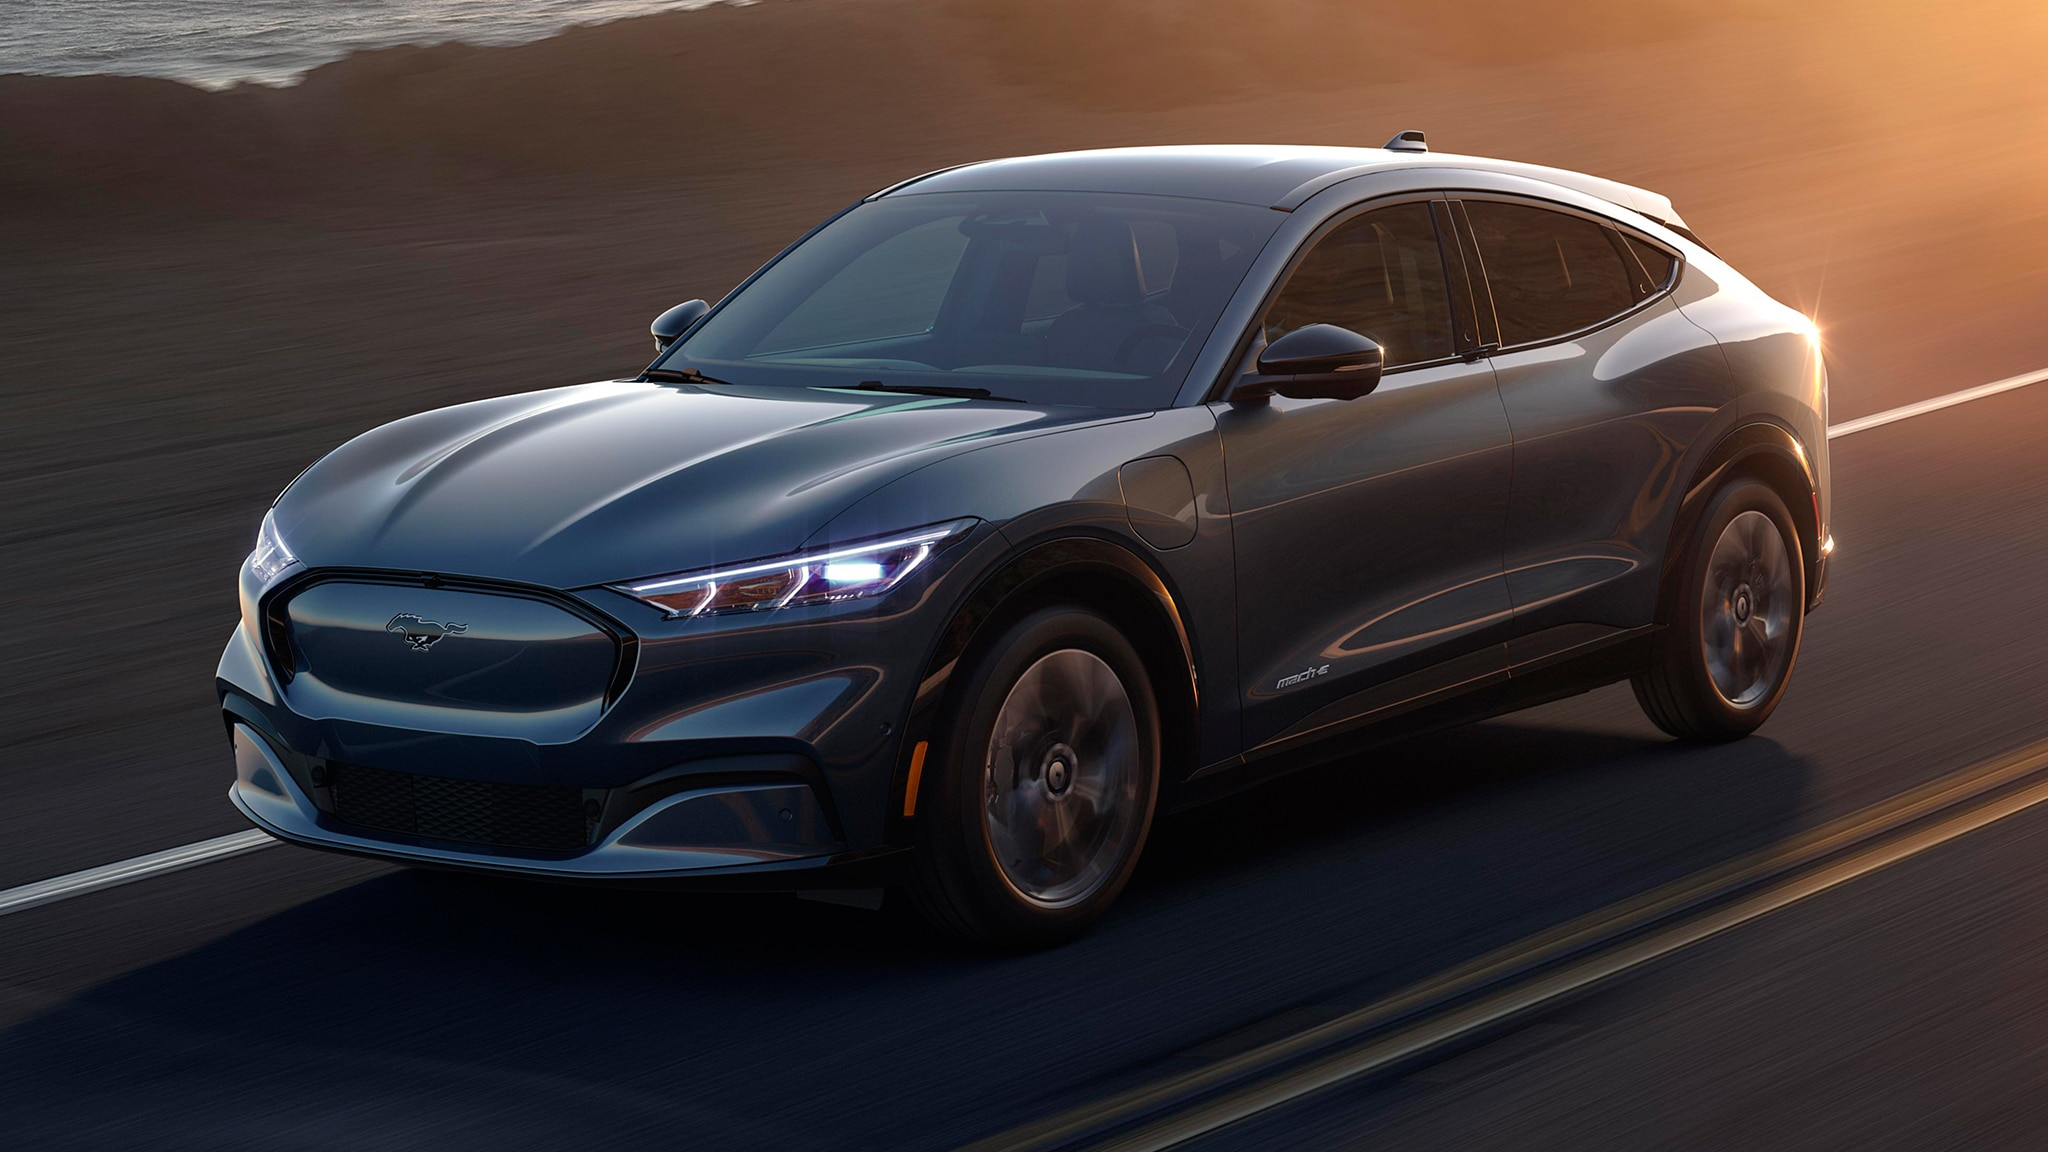 2021 Ford Mustang Mach E Electric Suv This Is It